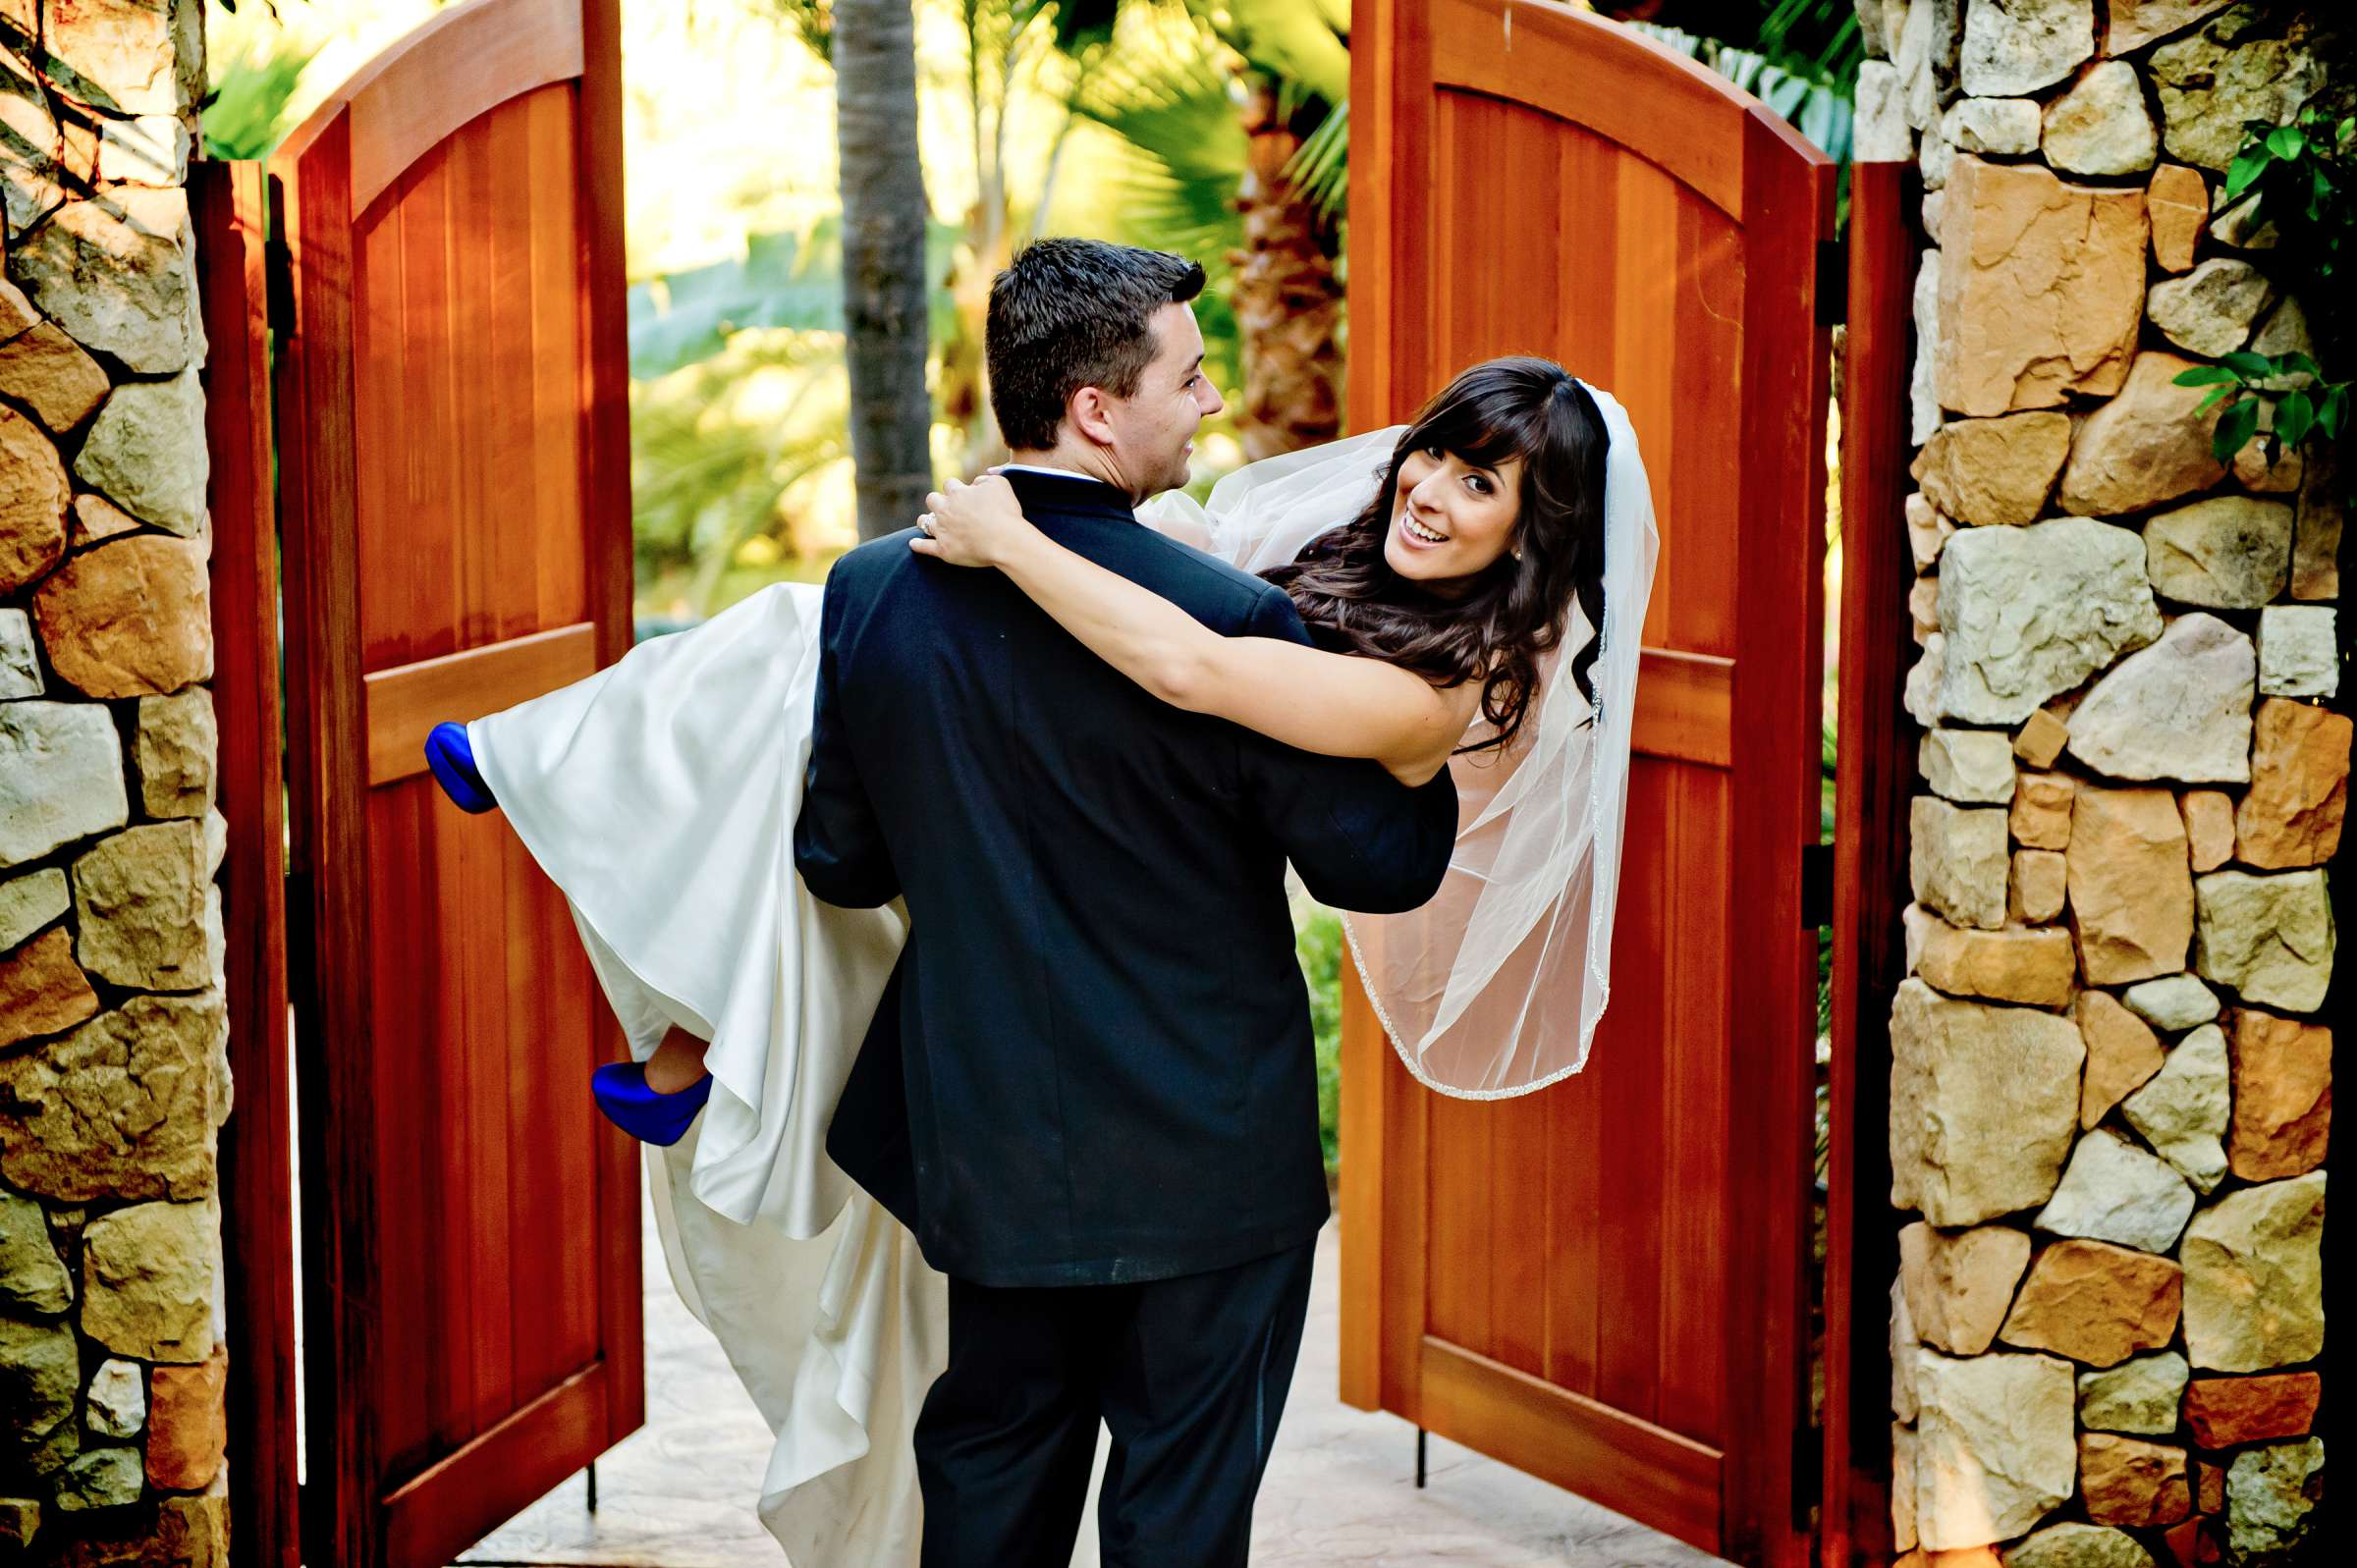 Grand Tradition Estate Wedding, Sharlene and Tony Wedding Photo #319460 by True Photography